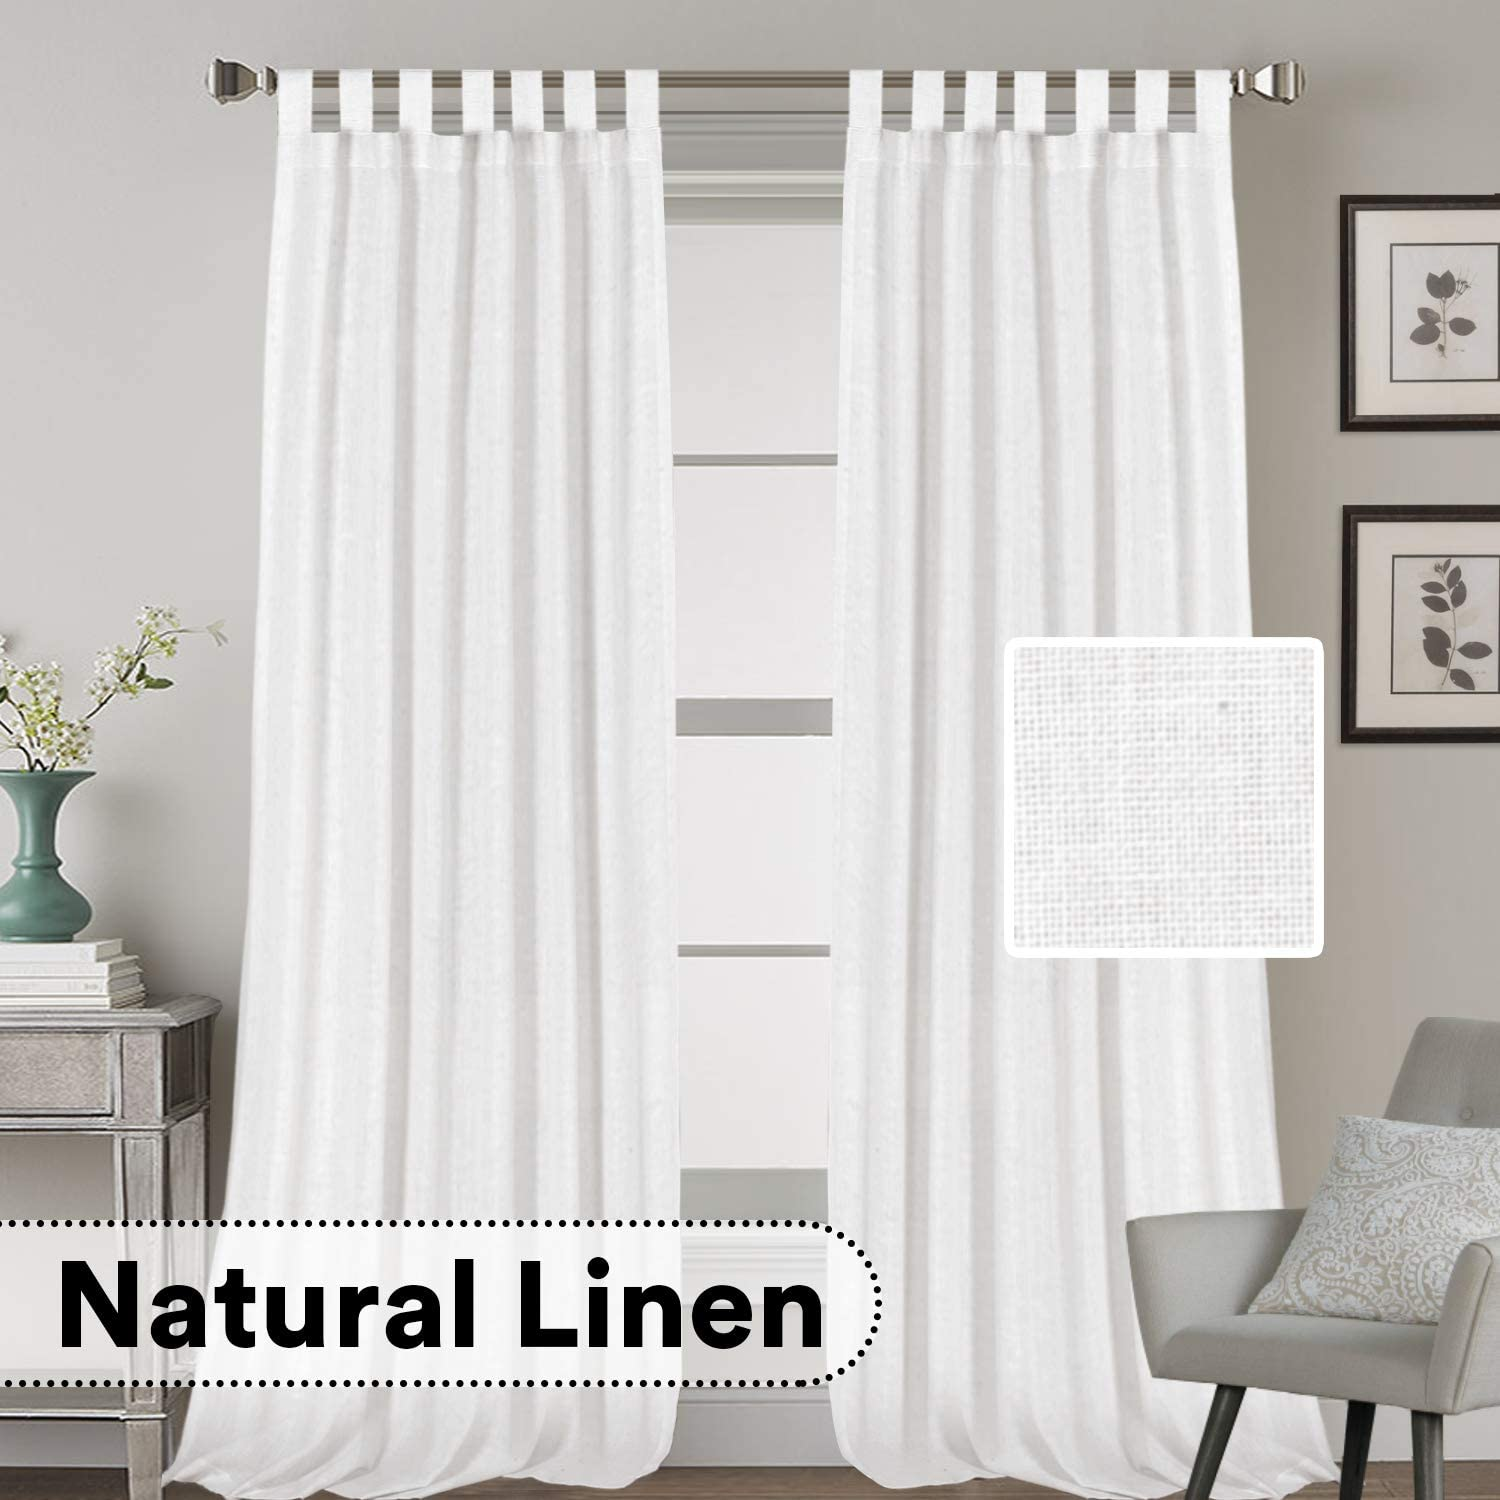 Linen Curtains Natural 価格 35%OFF Blended Tab Window Top Tre